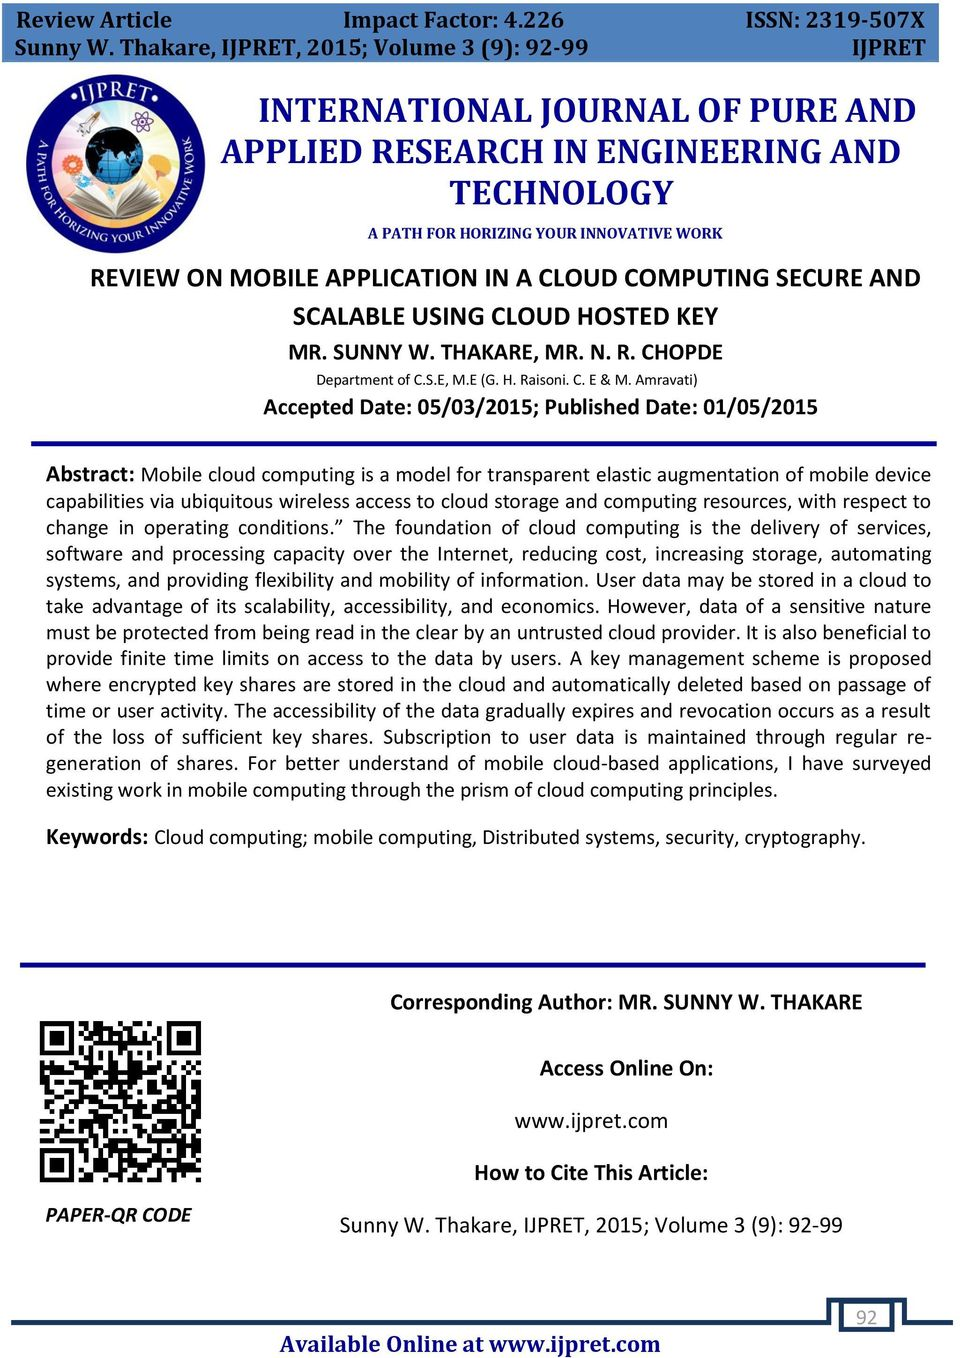 Amravati) Accepted Date: 05/03/2015; Published Date: 01/05/2015 Abstract: Mobile cloud computing is a model for transparent elastic augmentation of mobile device capabilities via ubiquitous wireless